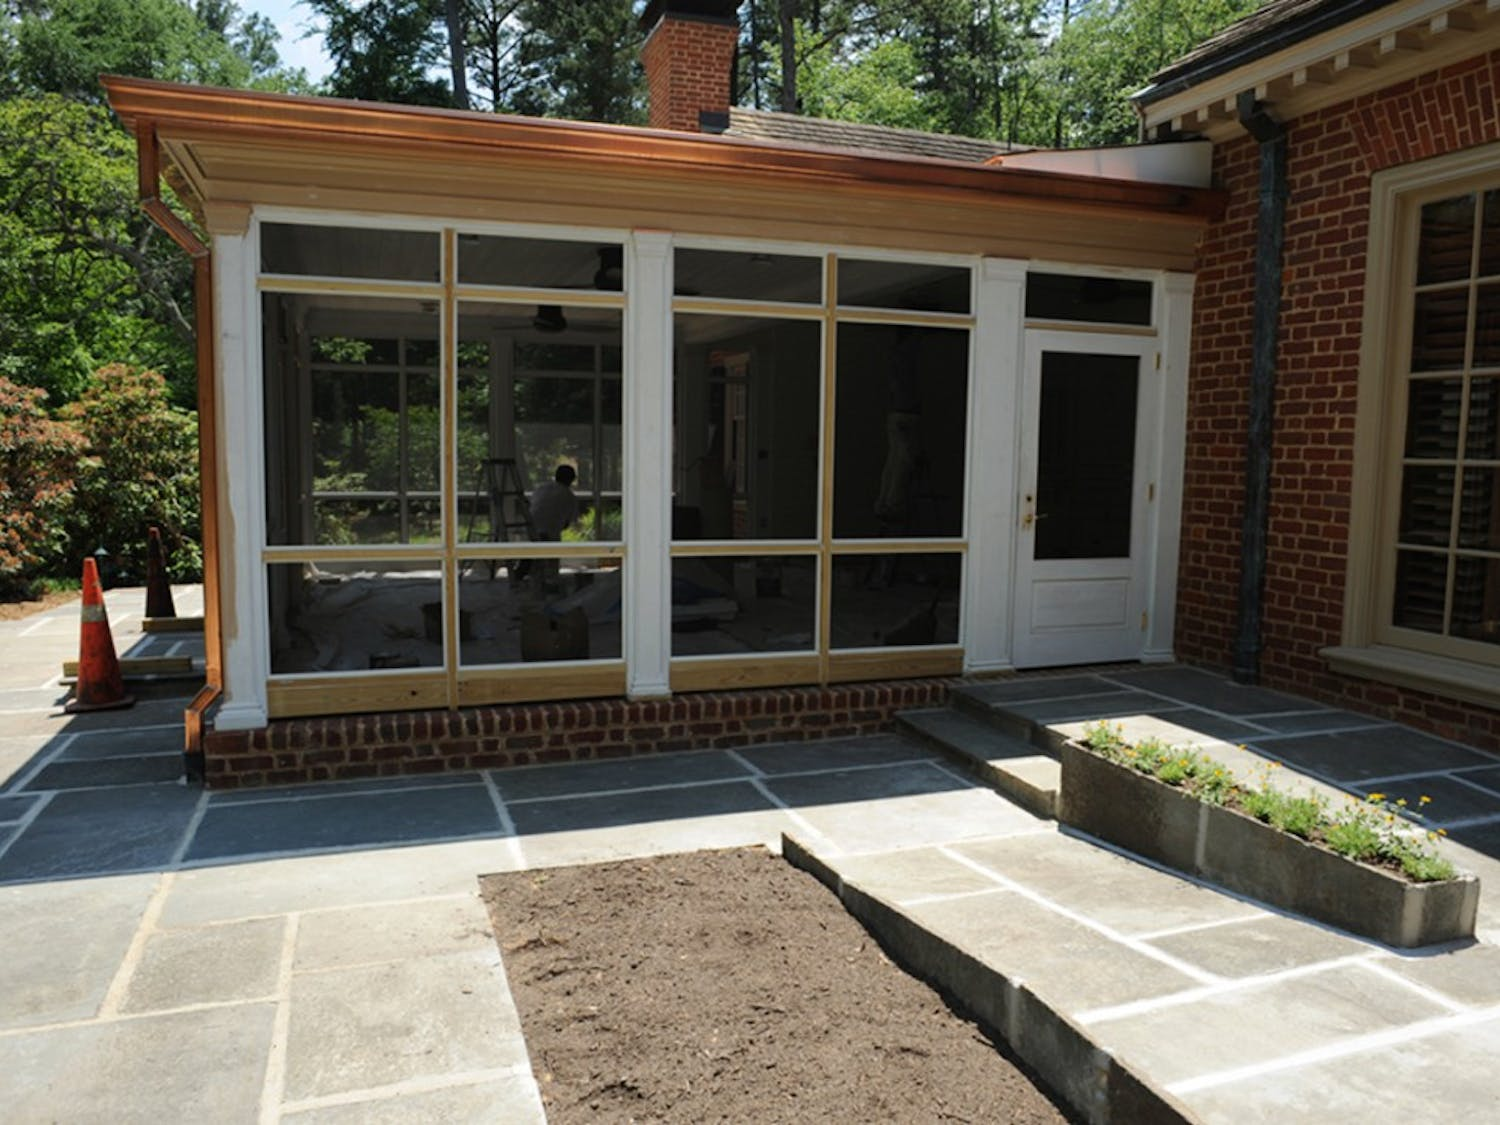 The porch at Chancellor Holden Thorp's house is being made compliant with the Americans with Disabilities Act with the addition of a ramp.